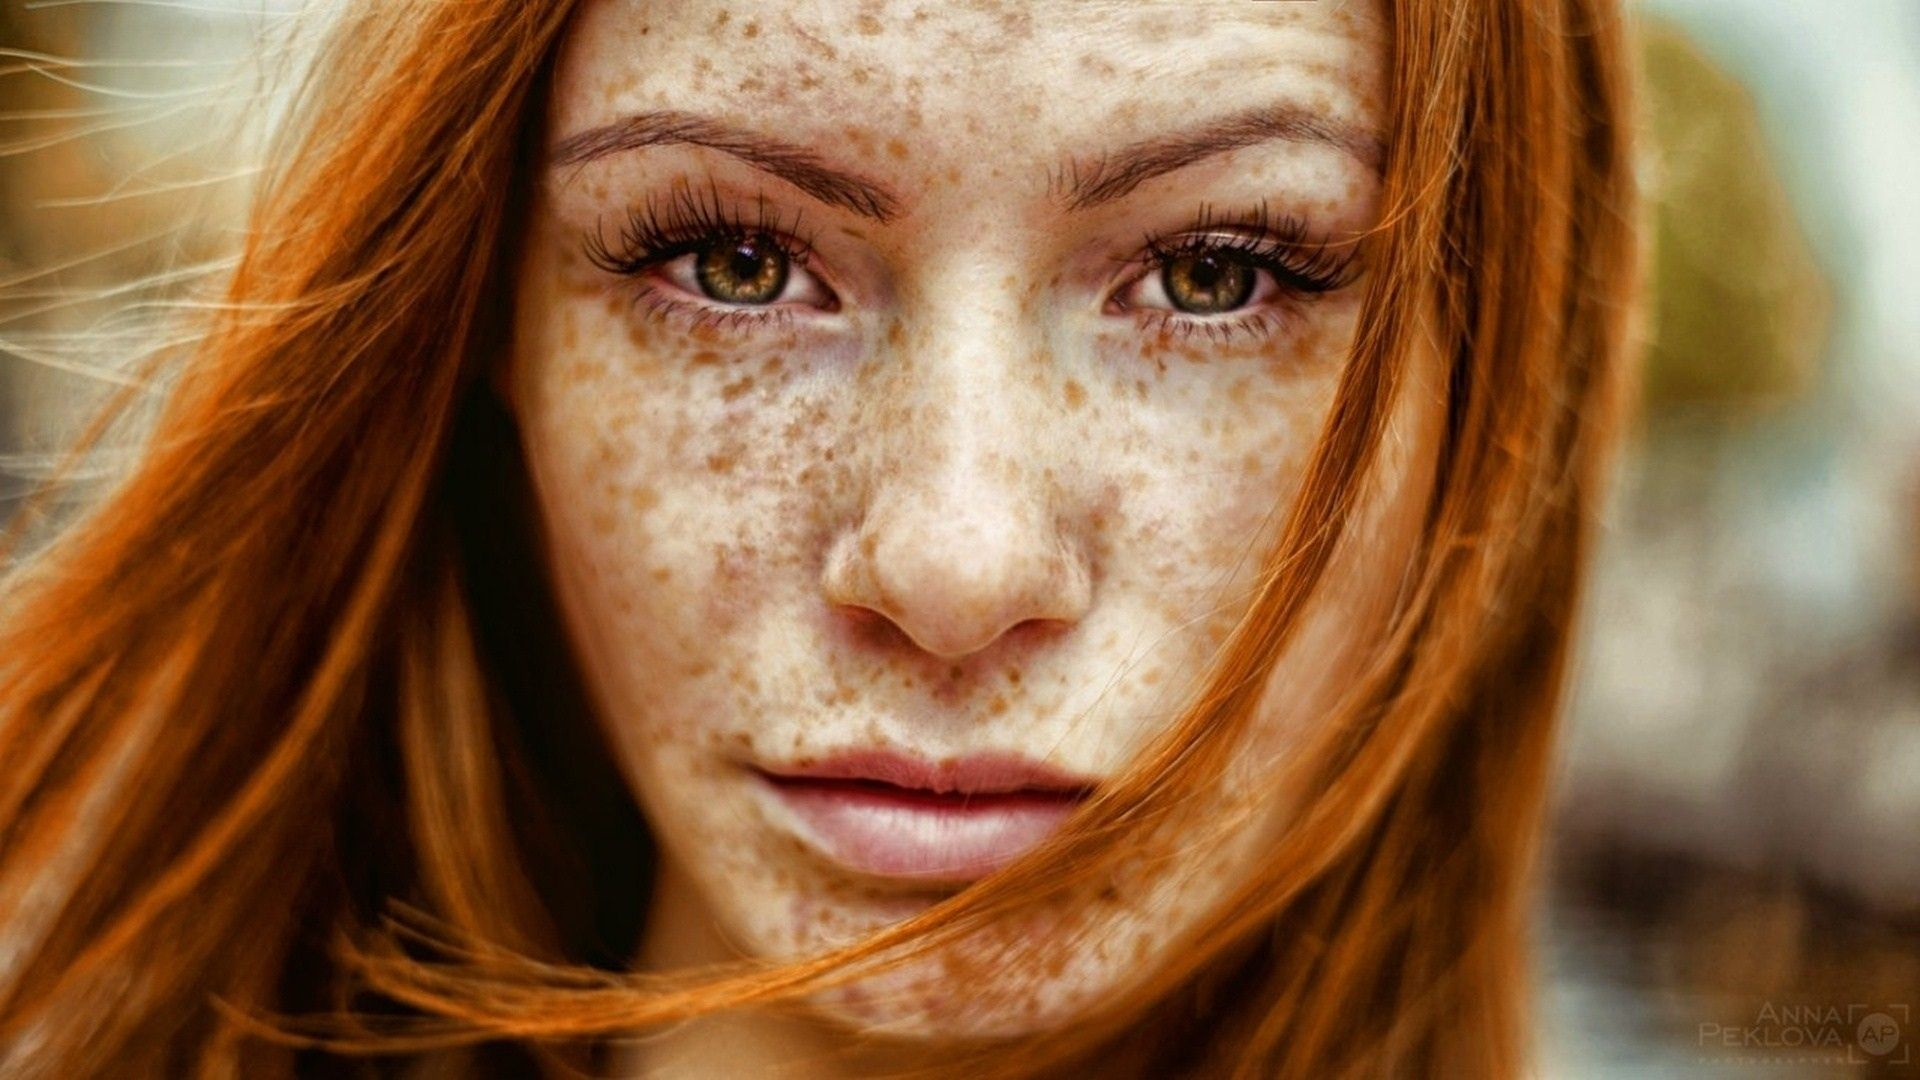 Homemade Remedy to Get Rid of Freckles